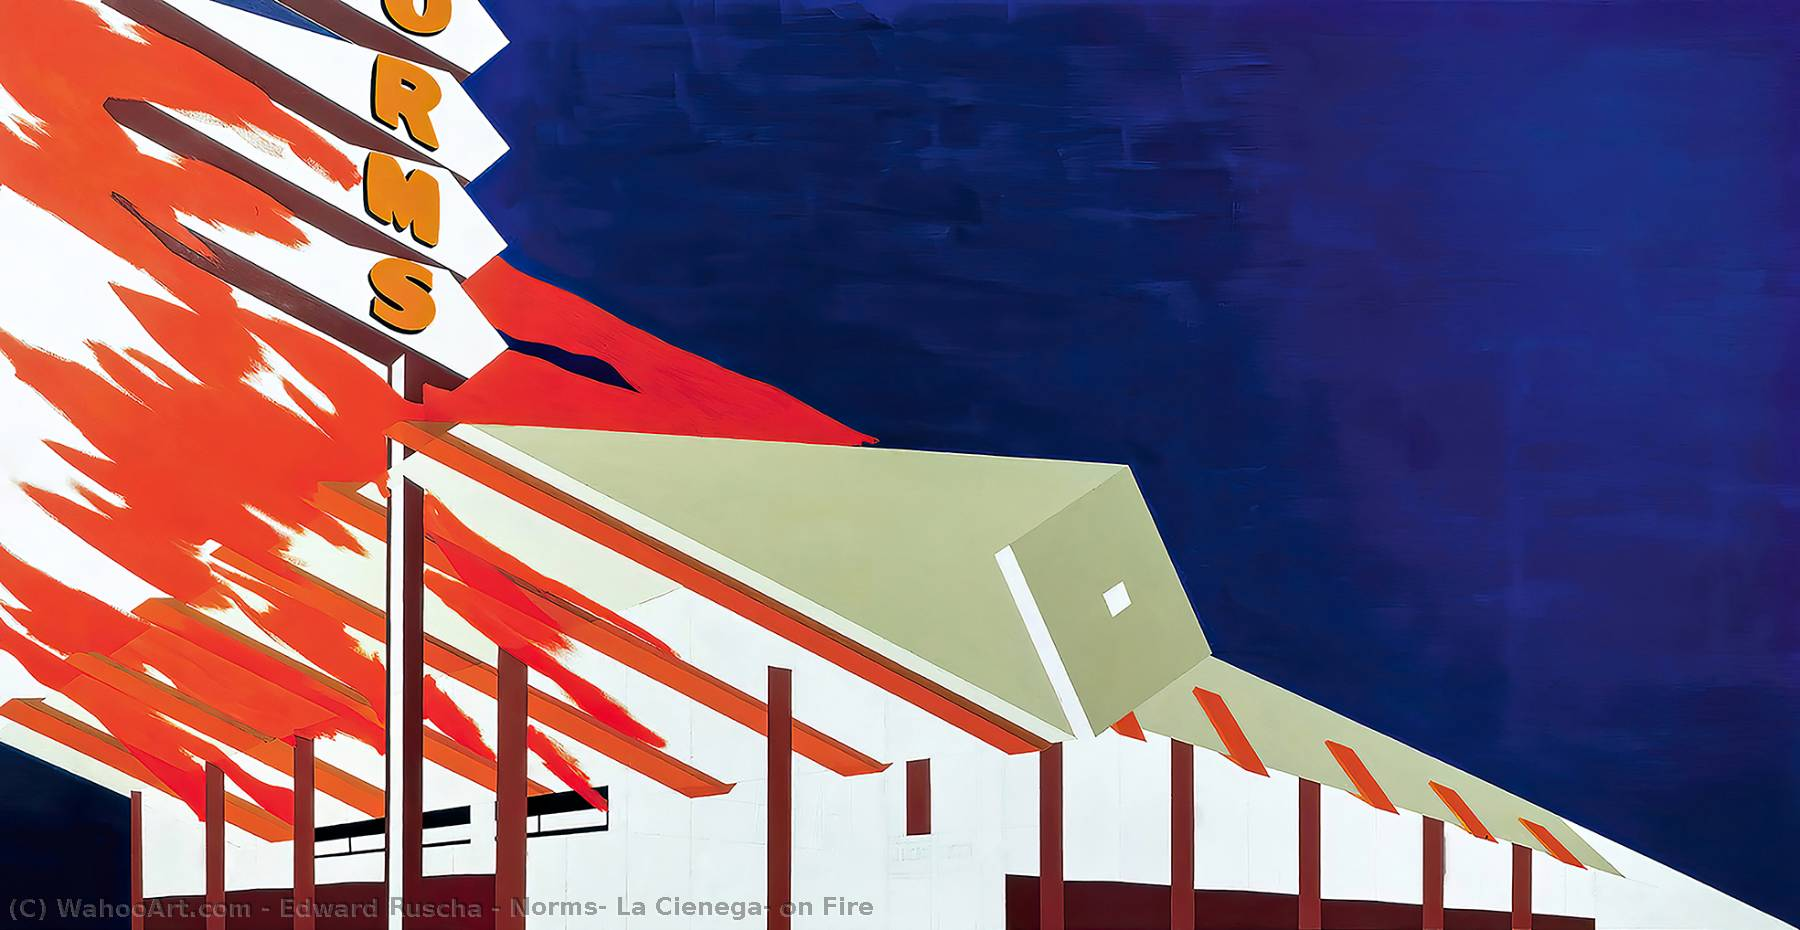 Buy Museum Art Reproductions Pop Art : Norms, La Cienega, on Fire by Edward Ruscha | BuyPopArt.com